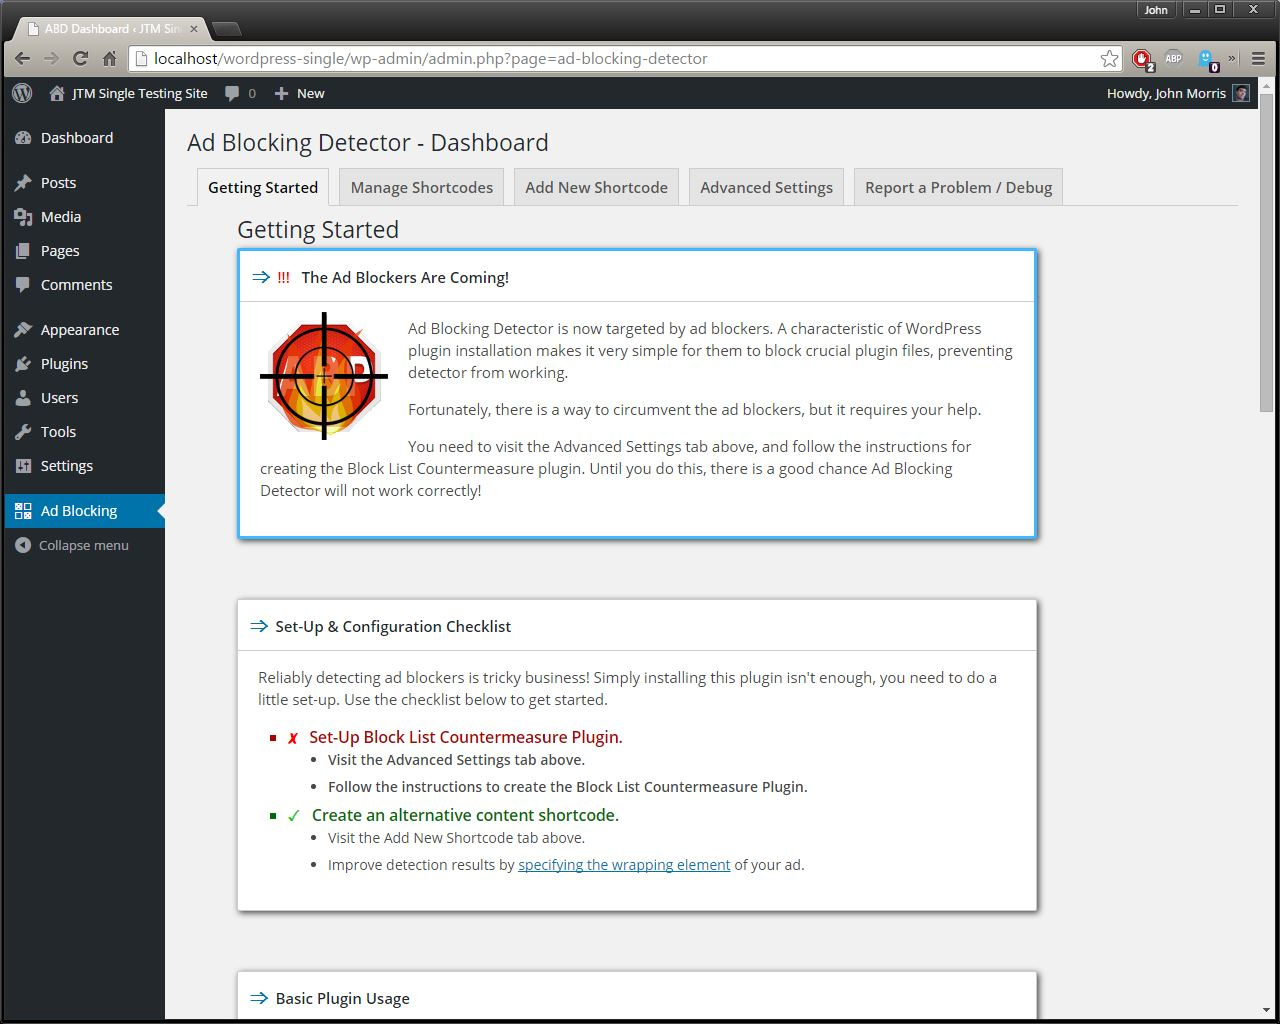 ad-blocking-detector screenshot 1